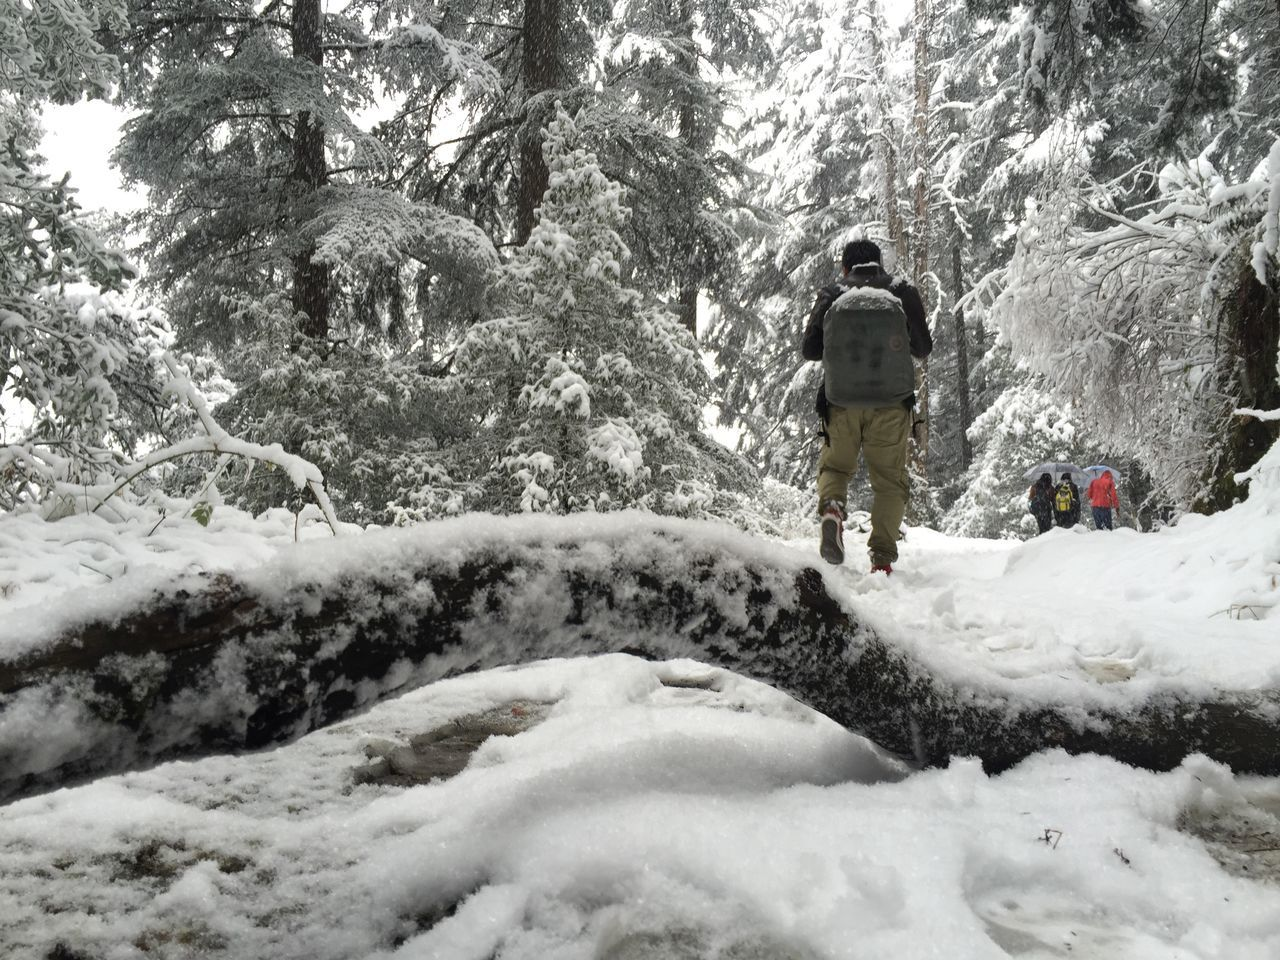 Rear View Of Man Walking On Snow Covered Pathway At Mountain